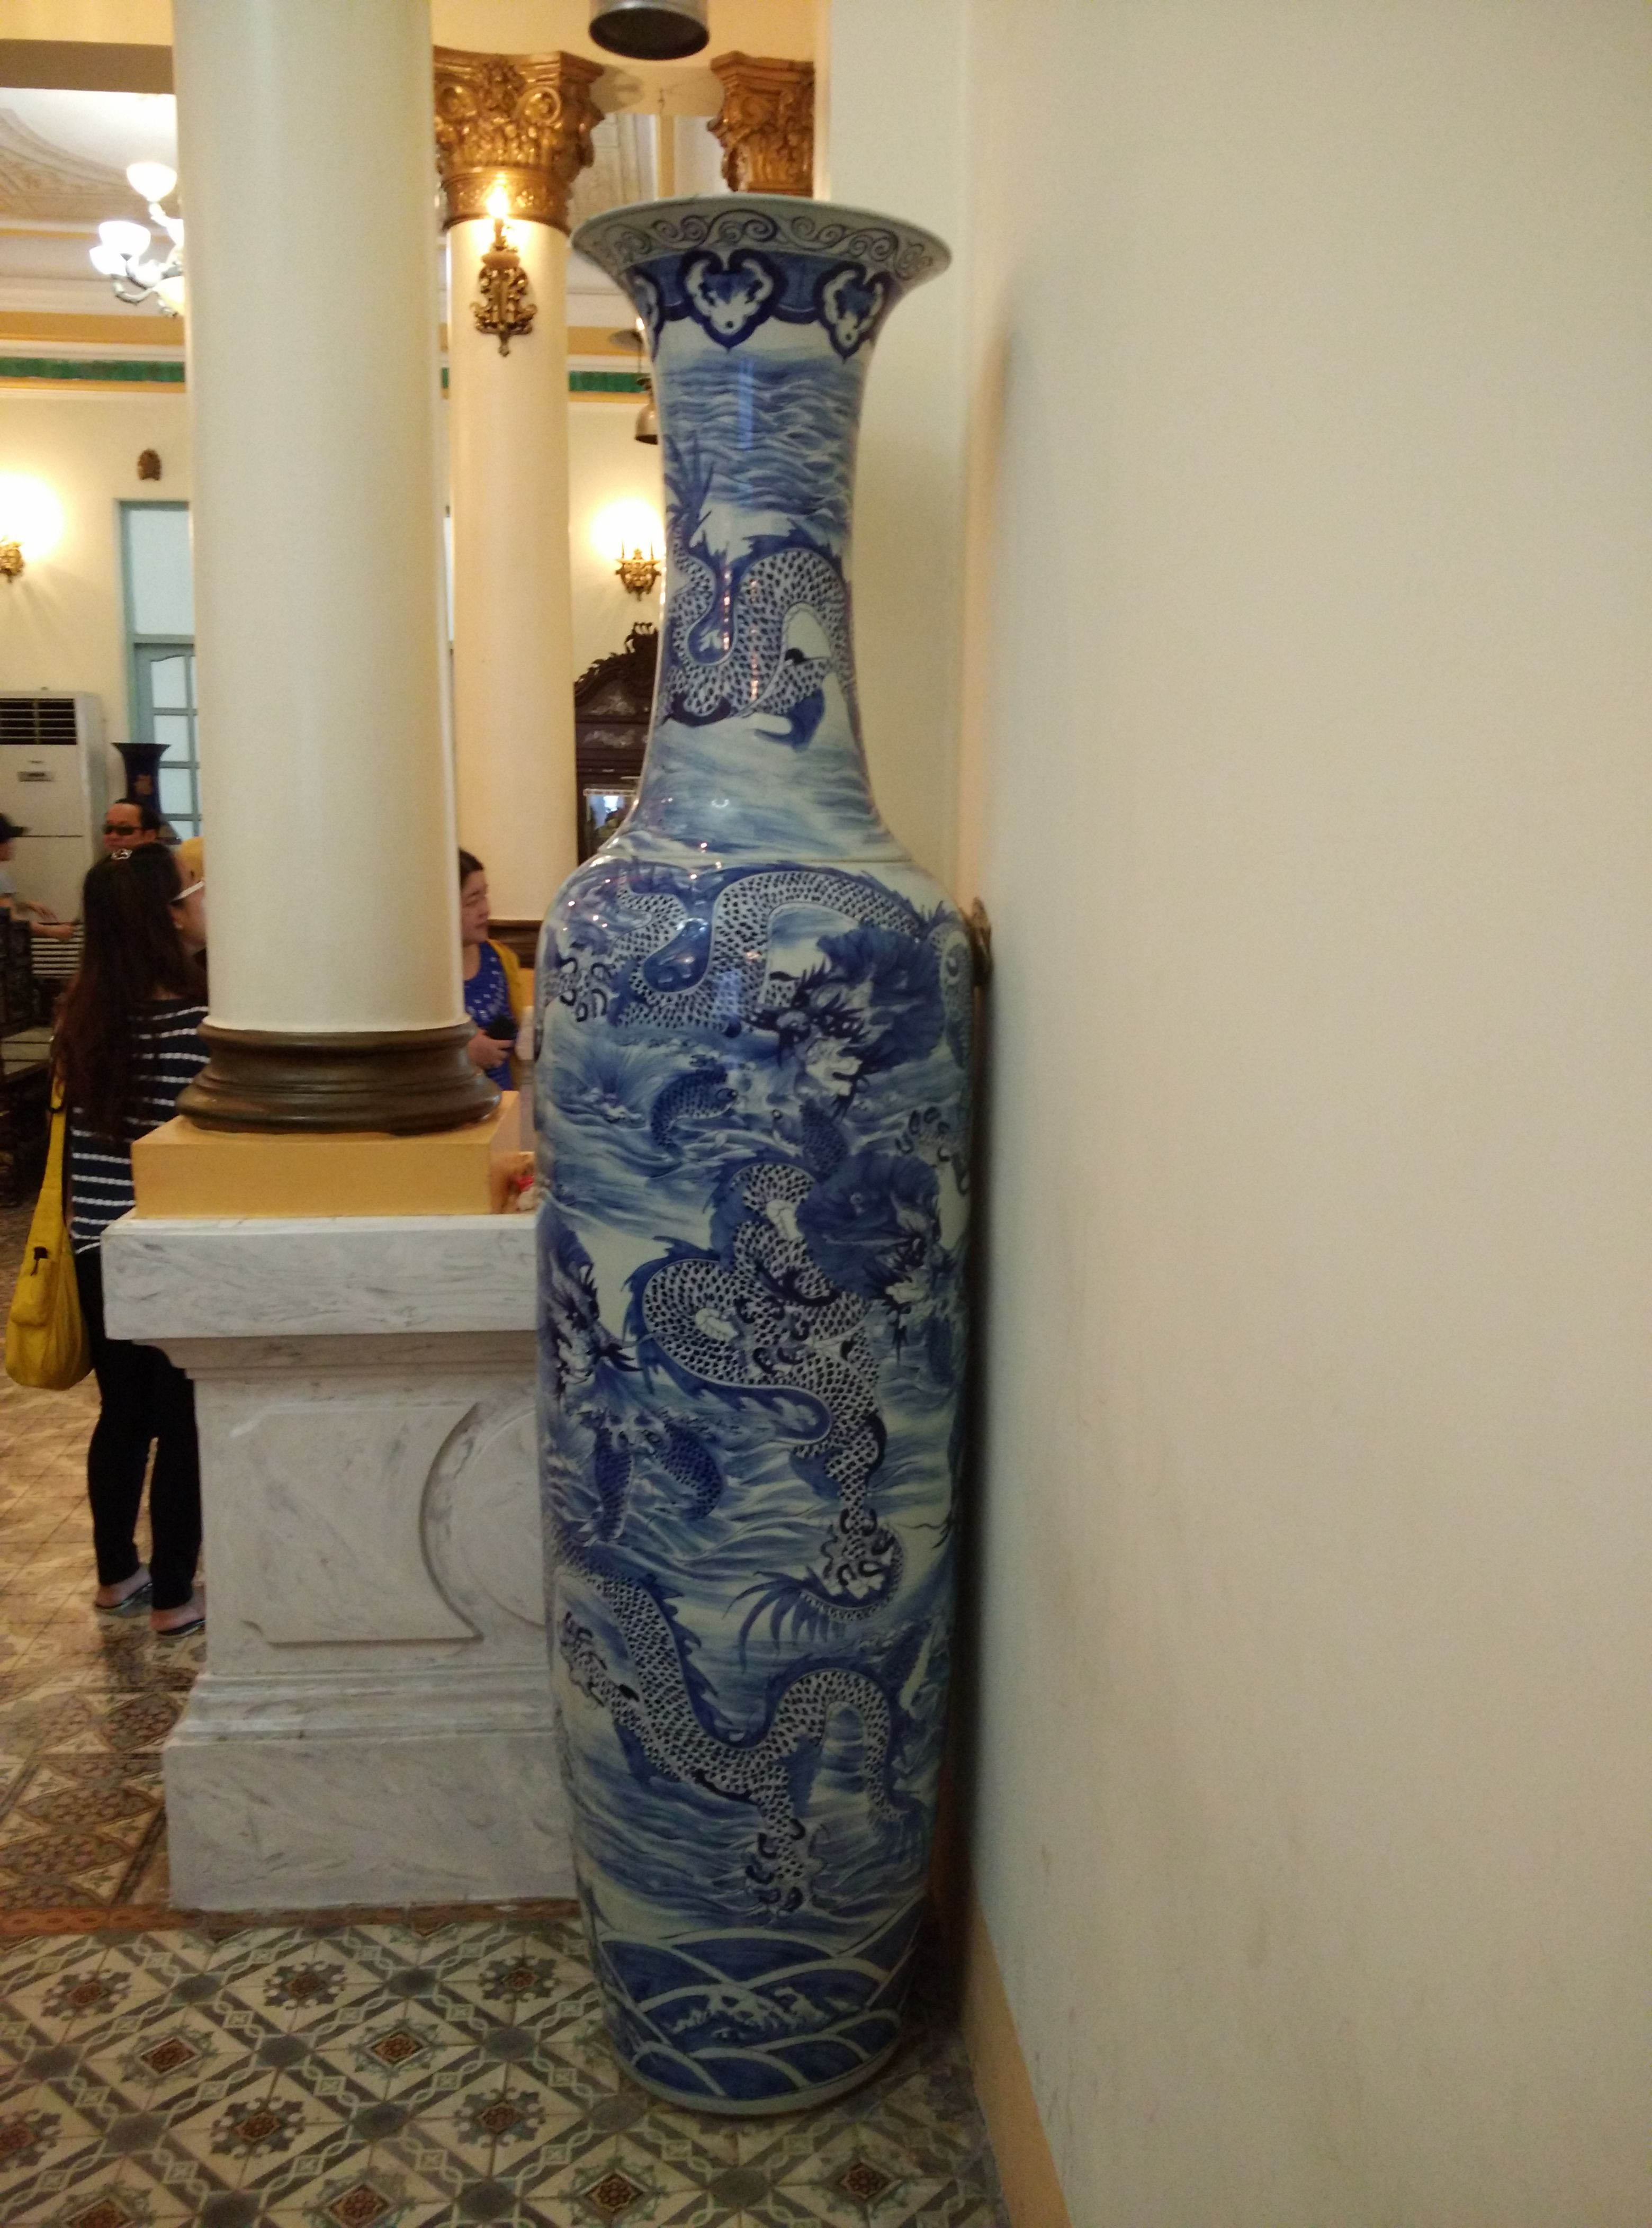 The big vase is the symbol of wealth container, then we have to keep it in a close place, avoiding curiosity